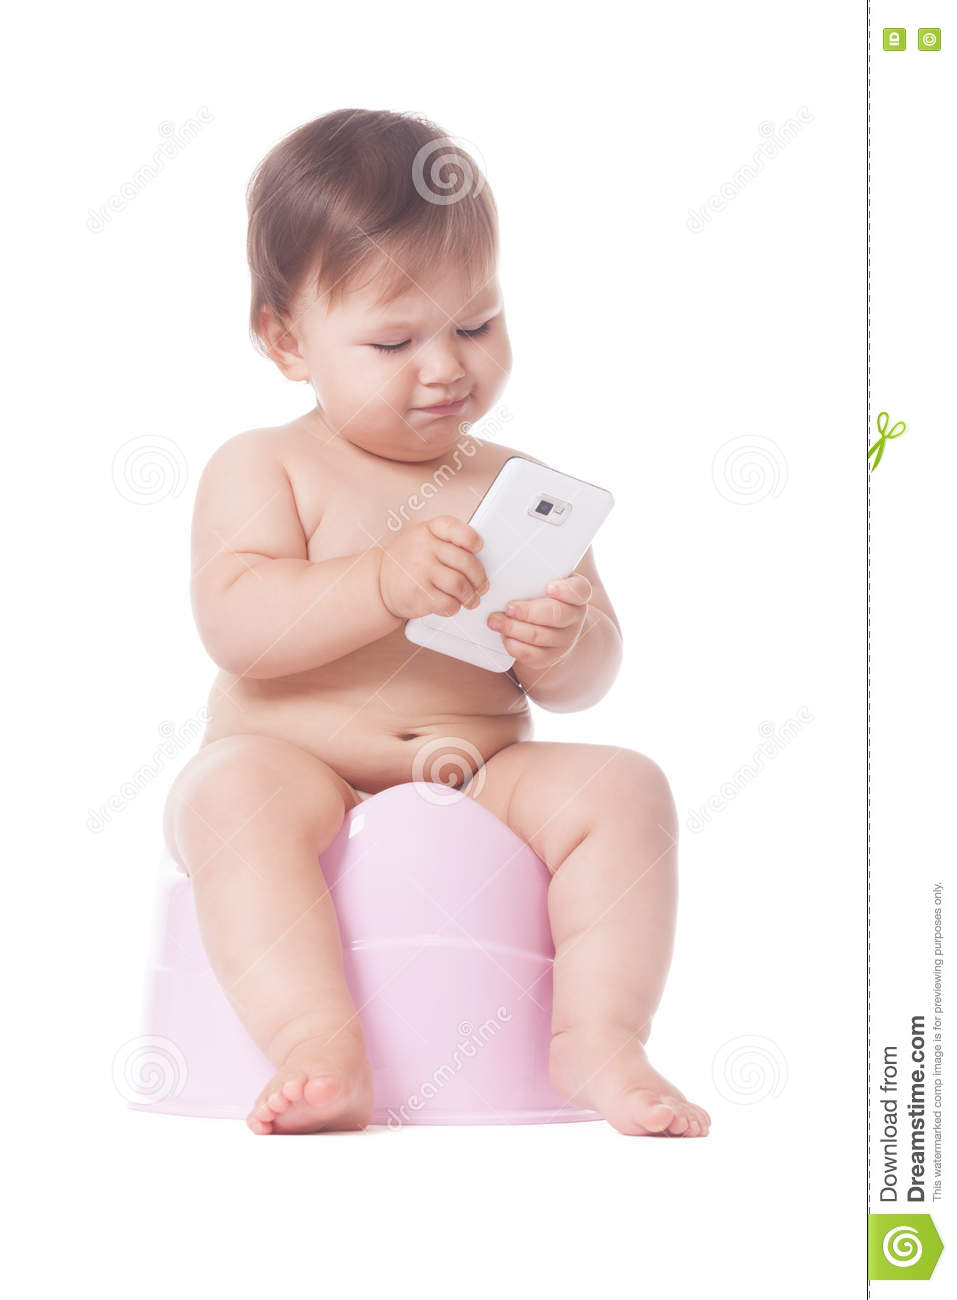 Download Smart potty training stock photo. Image of infant, cute - 80083122